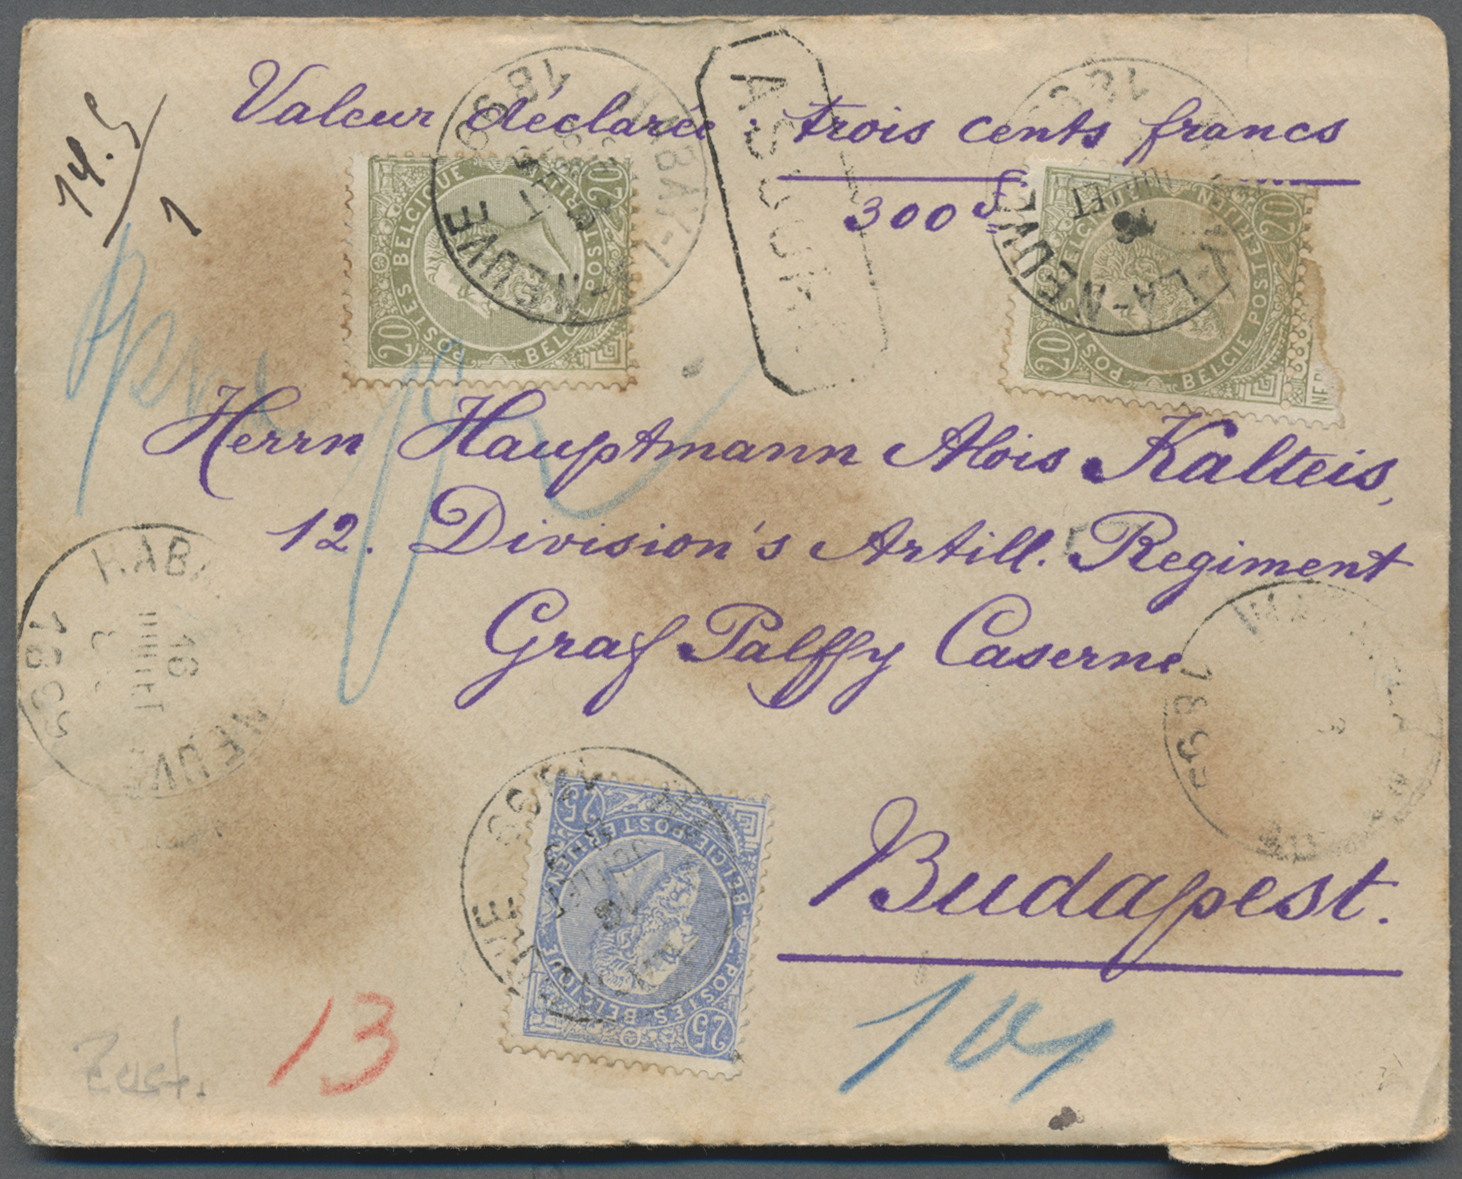 Lot 26191 - nachlässe  -  Auktionshaus Christoph Gärtner GmbH & Co. KG Sale #46 Gollcetions Germany - including the suplement